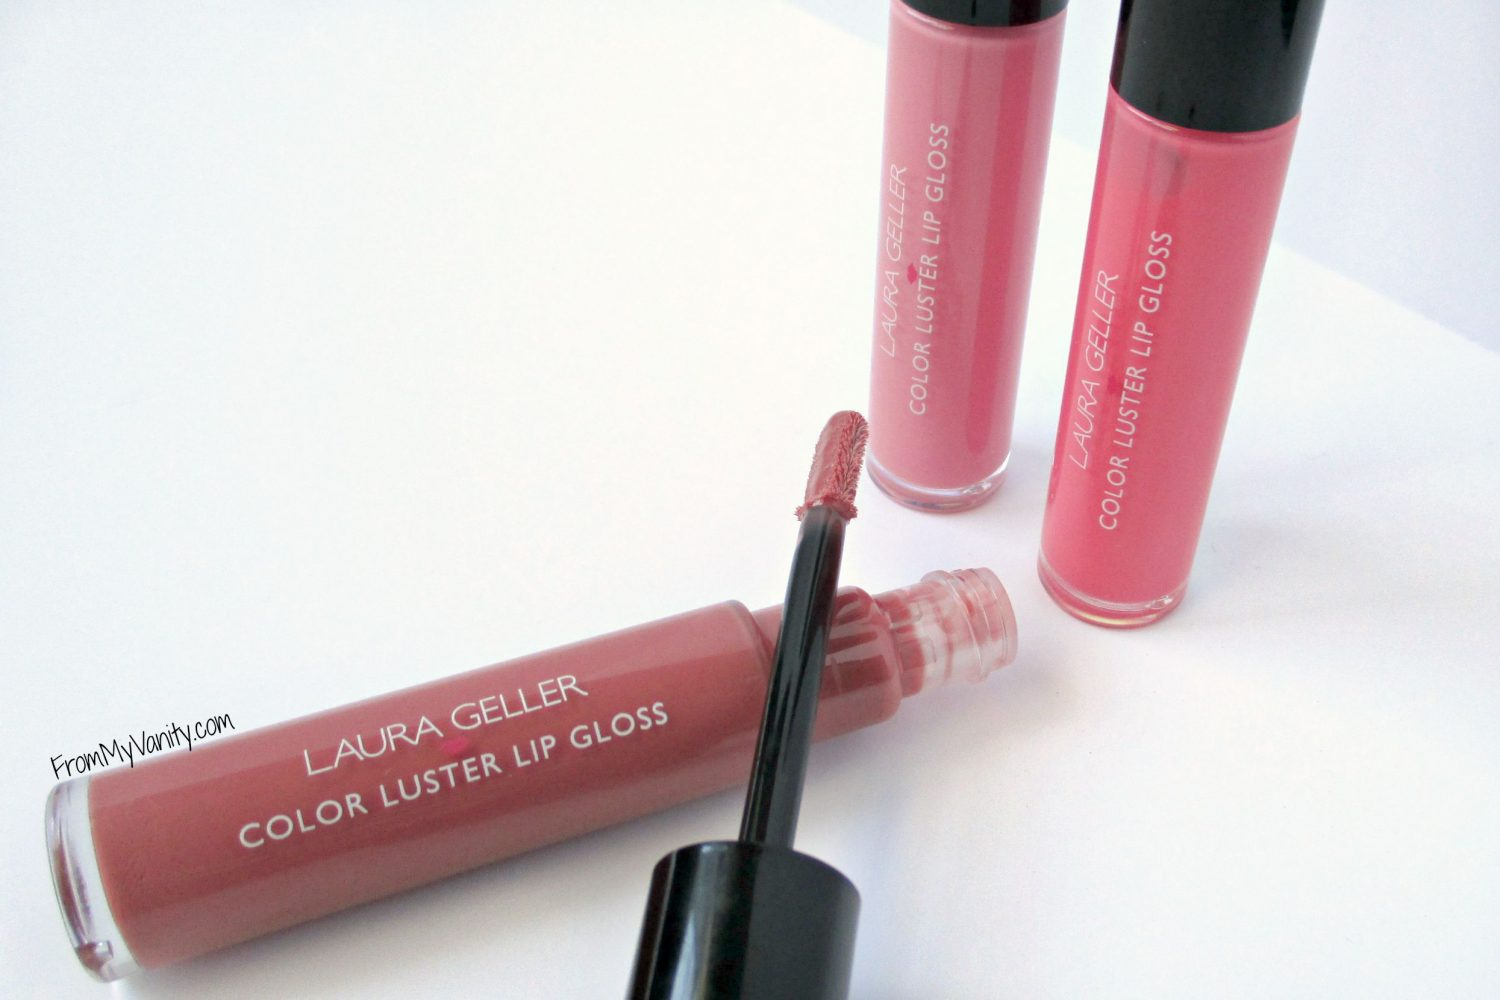 Laura Geller Color Luster Lip Glosses // All Lip Glosses // From My Vanity